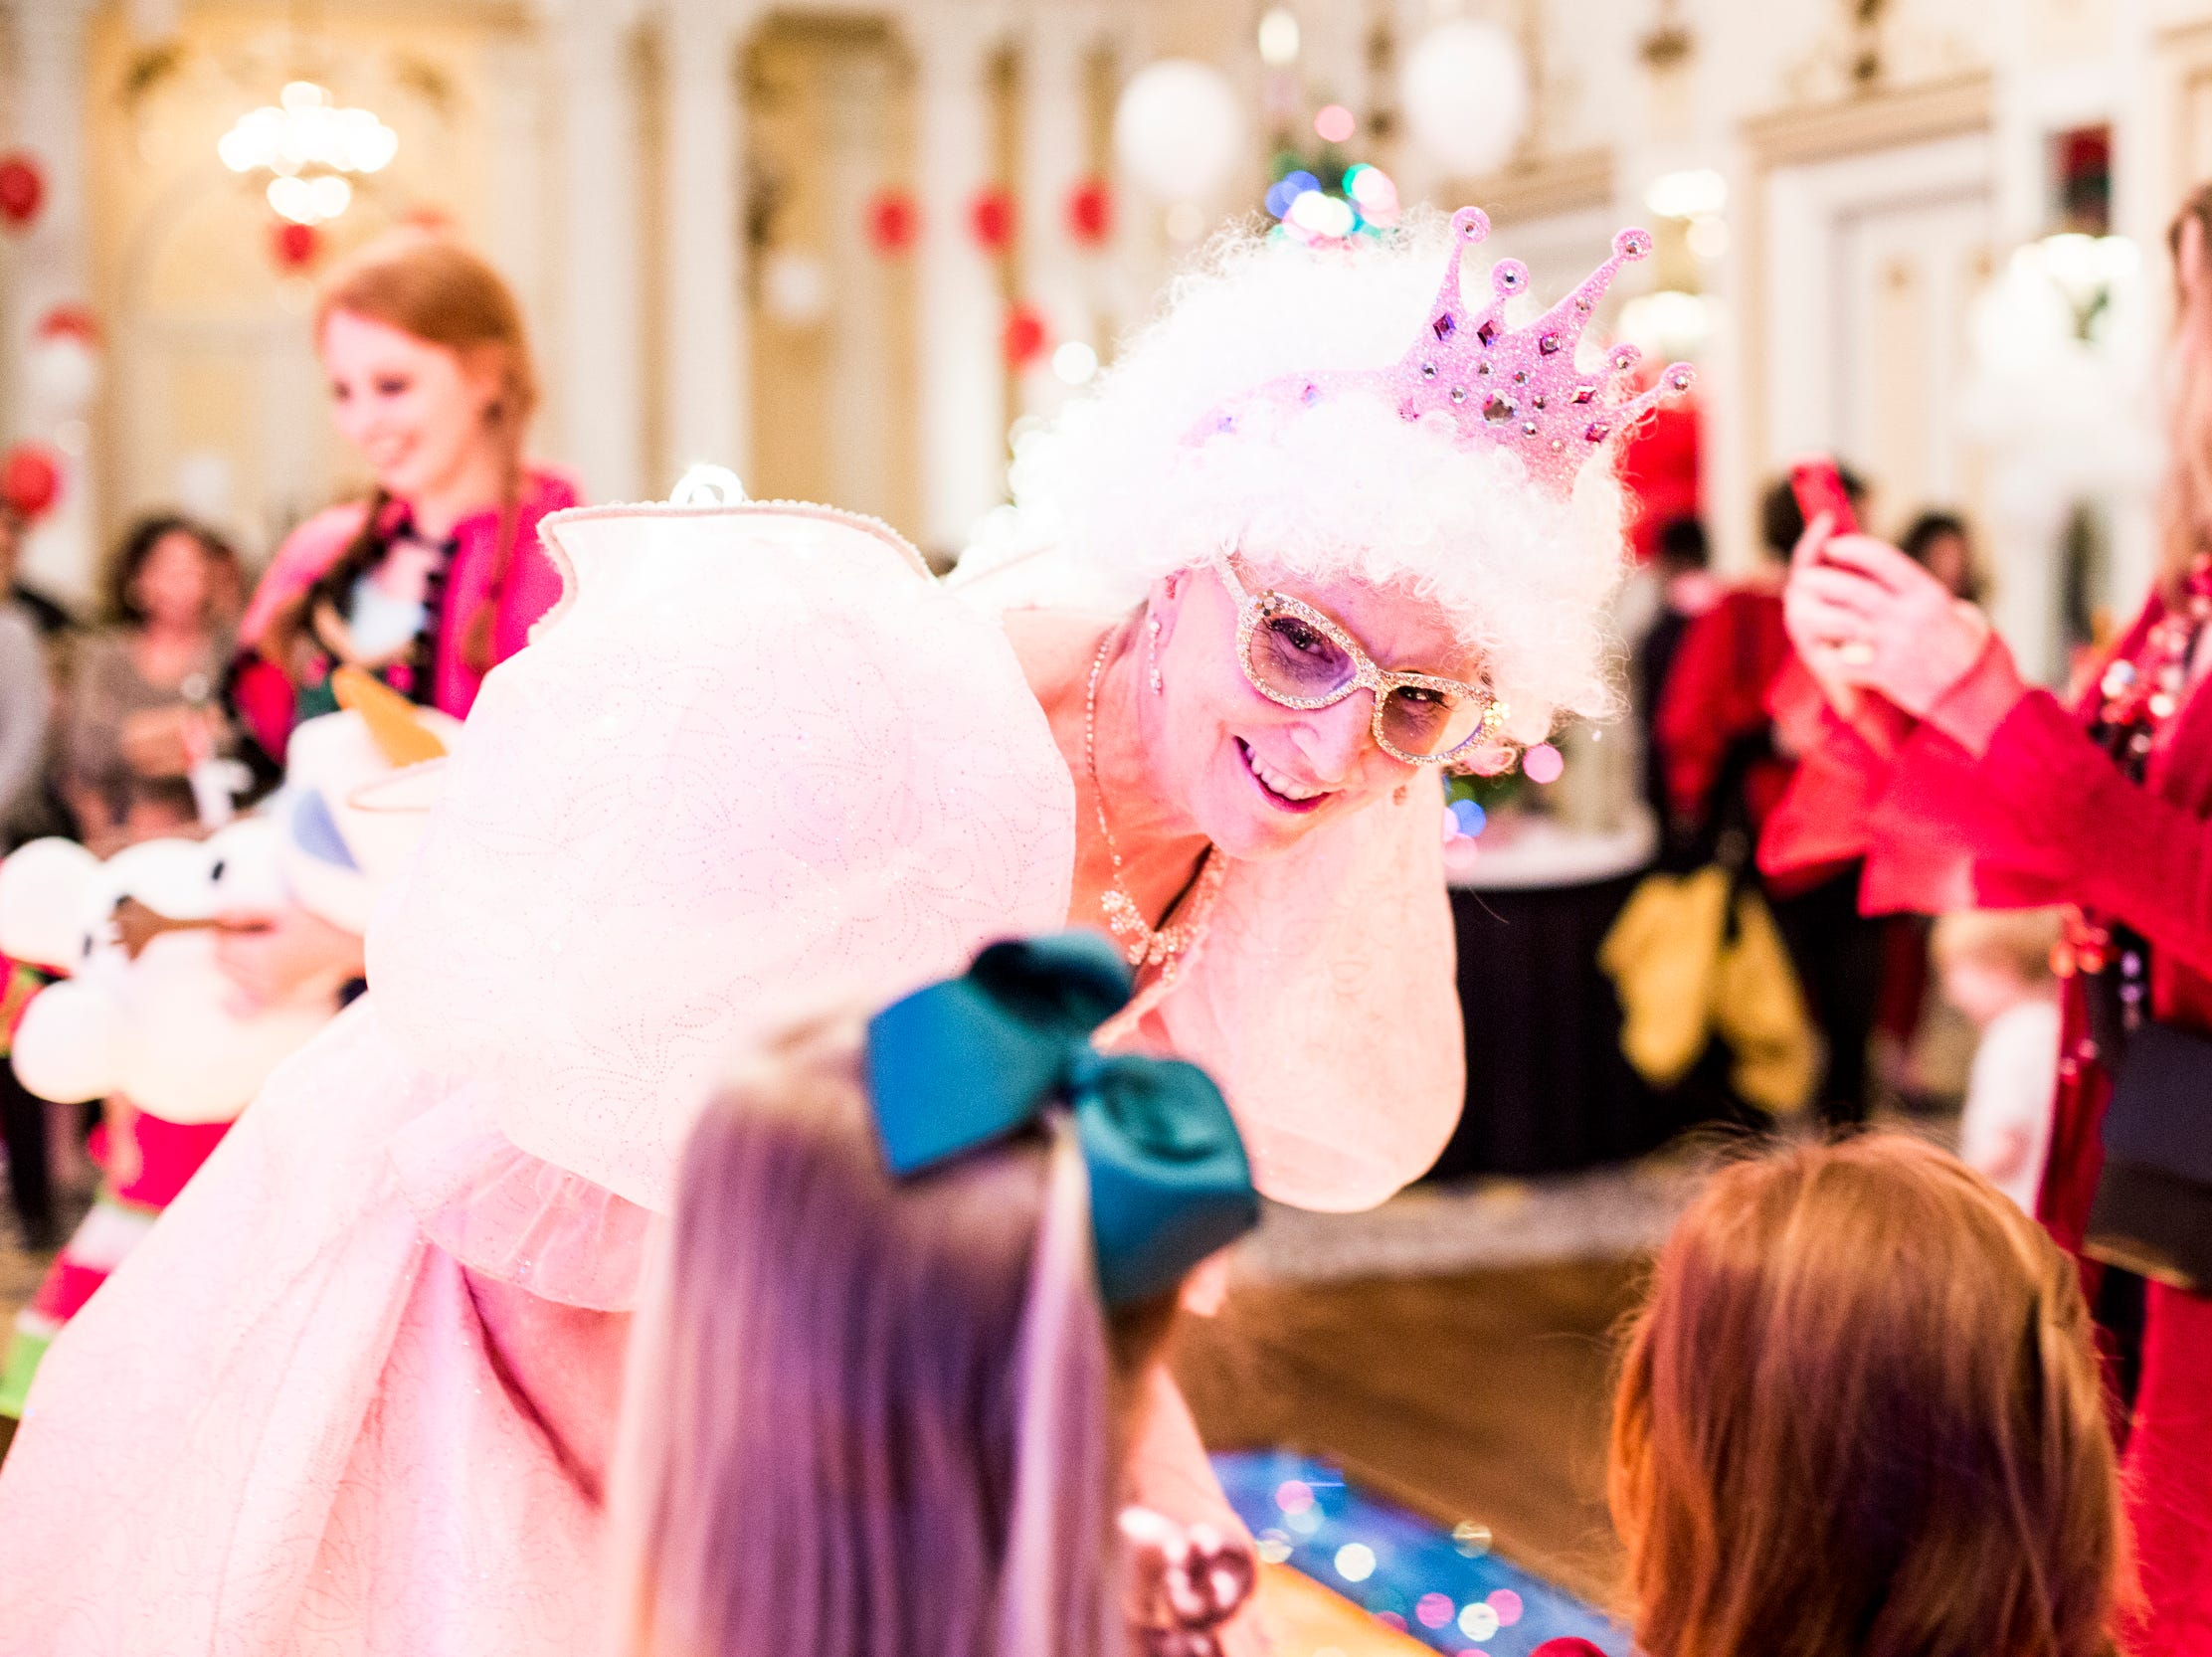 December 02 2018 - Mary Driscoll, dressed as the fairy godmother talks with children during the Memphis Jingle Bell Ball Holiday Cookie Party inside of the Continental Ballroom at the Peabody Hotel on Sunday. This was the 30th anniversary of the Jingle Bell Ball.